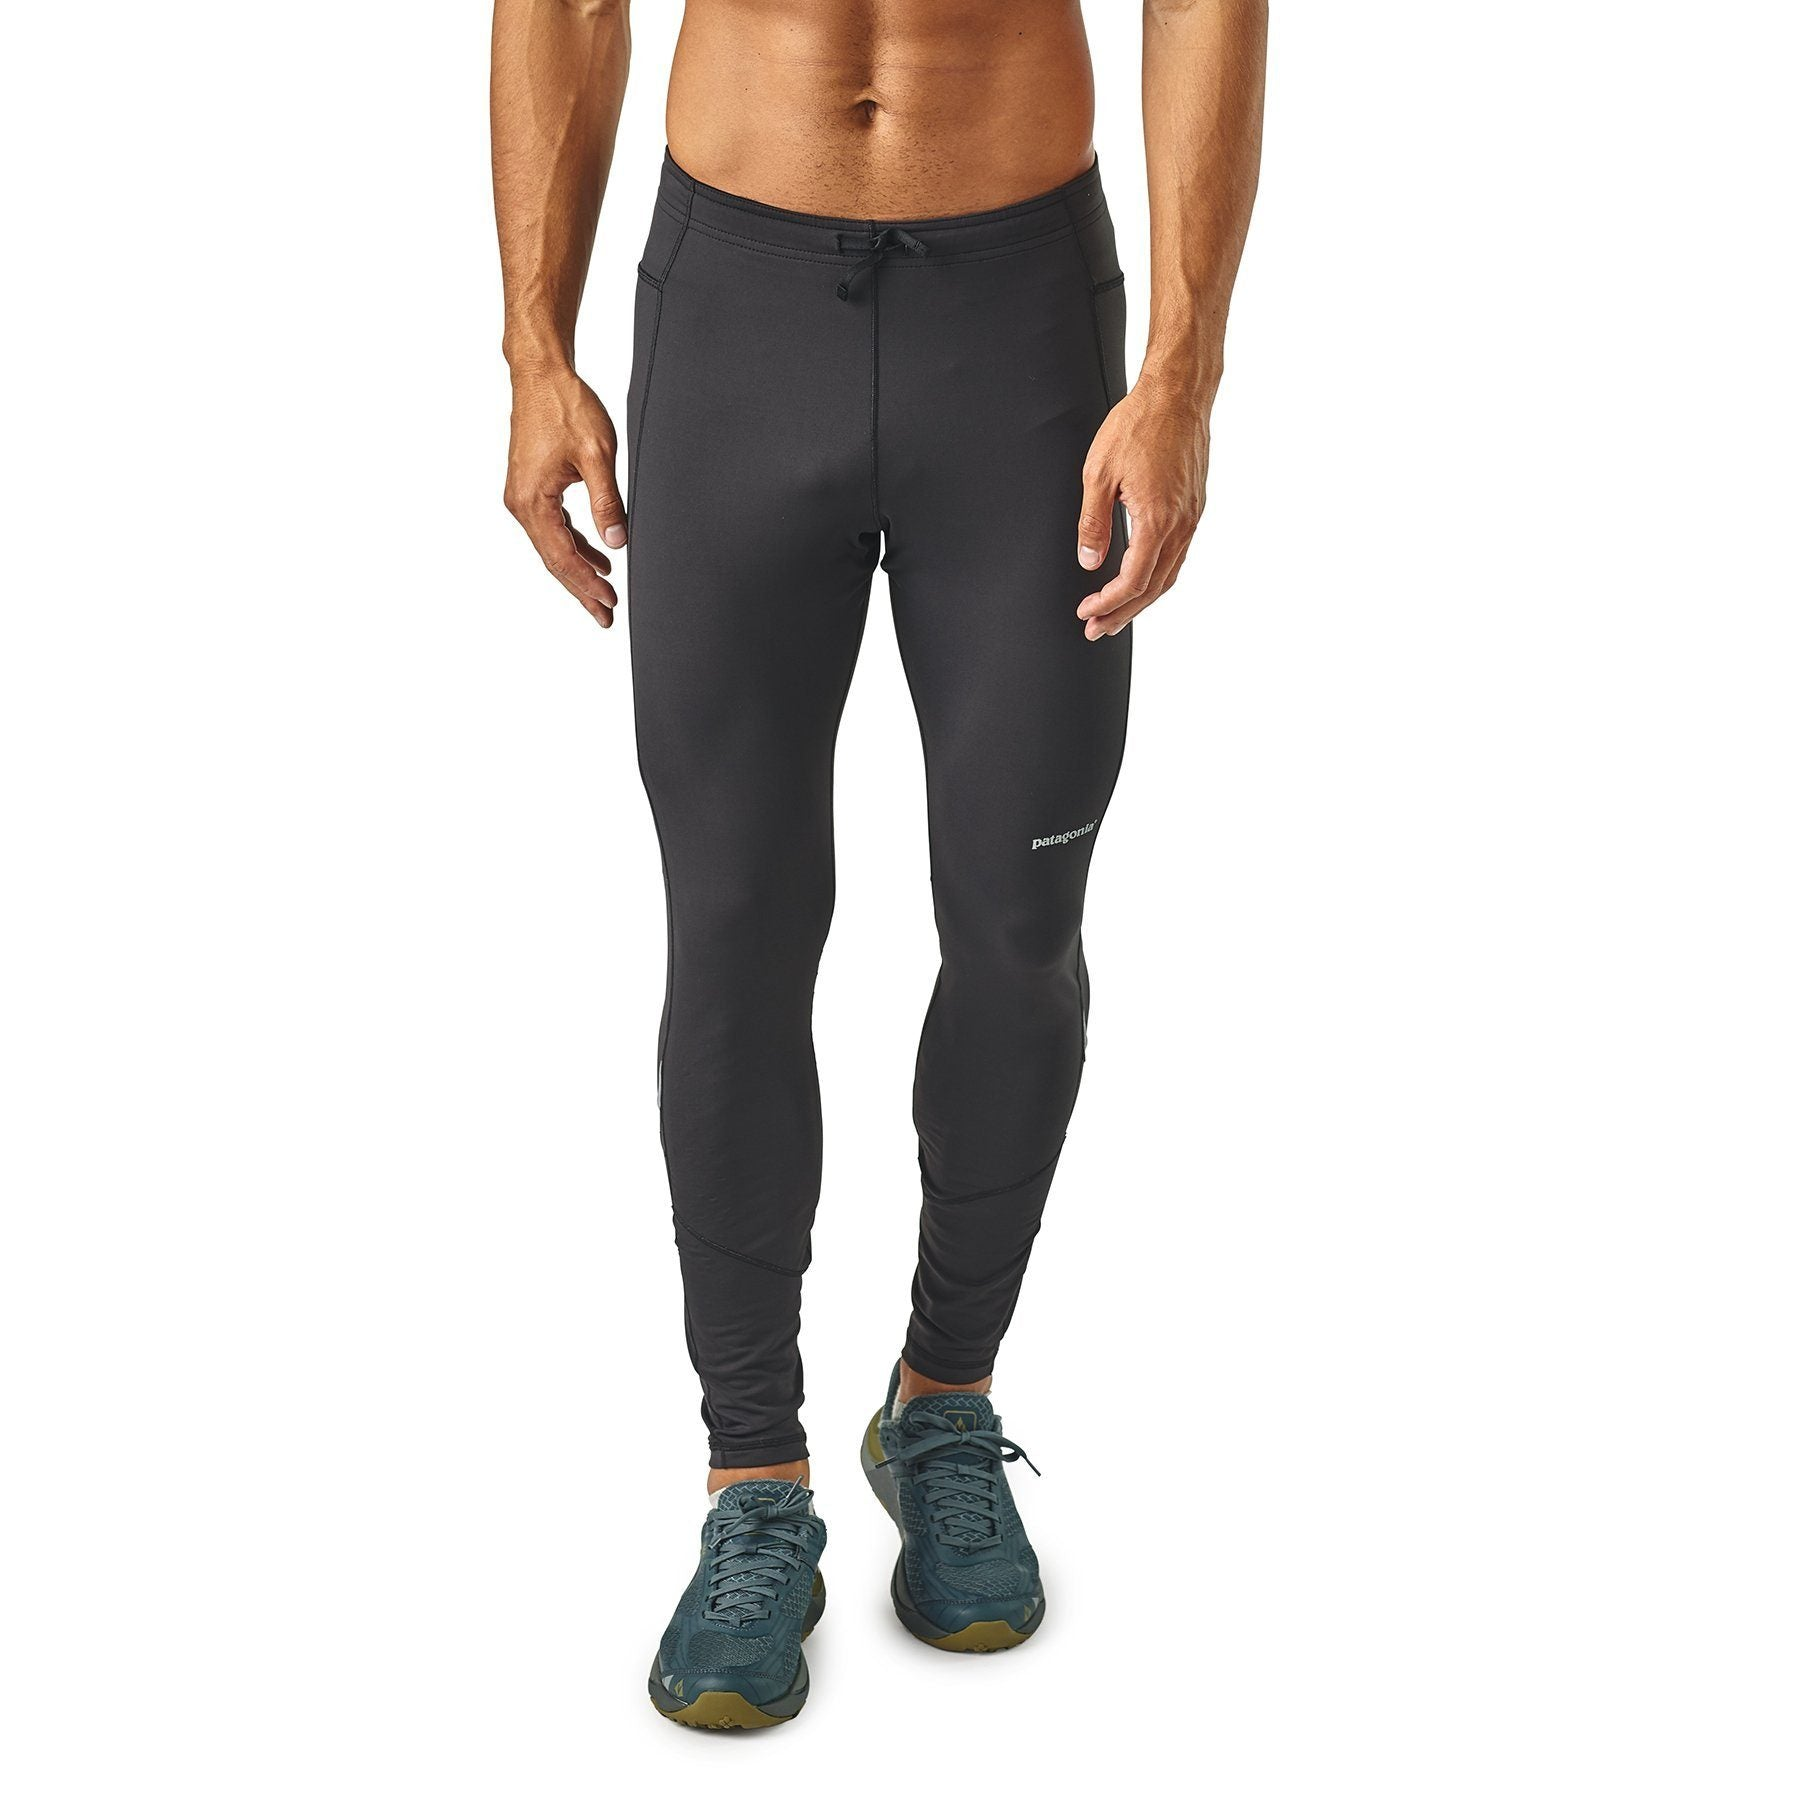 Patagonia - M's Peak Mission Running Tights - Recycled Nylon - Weekendbee - sustainable sportswear